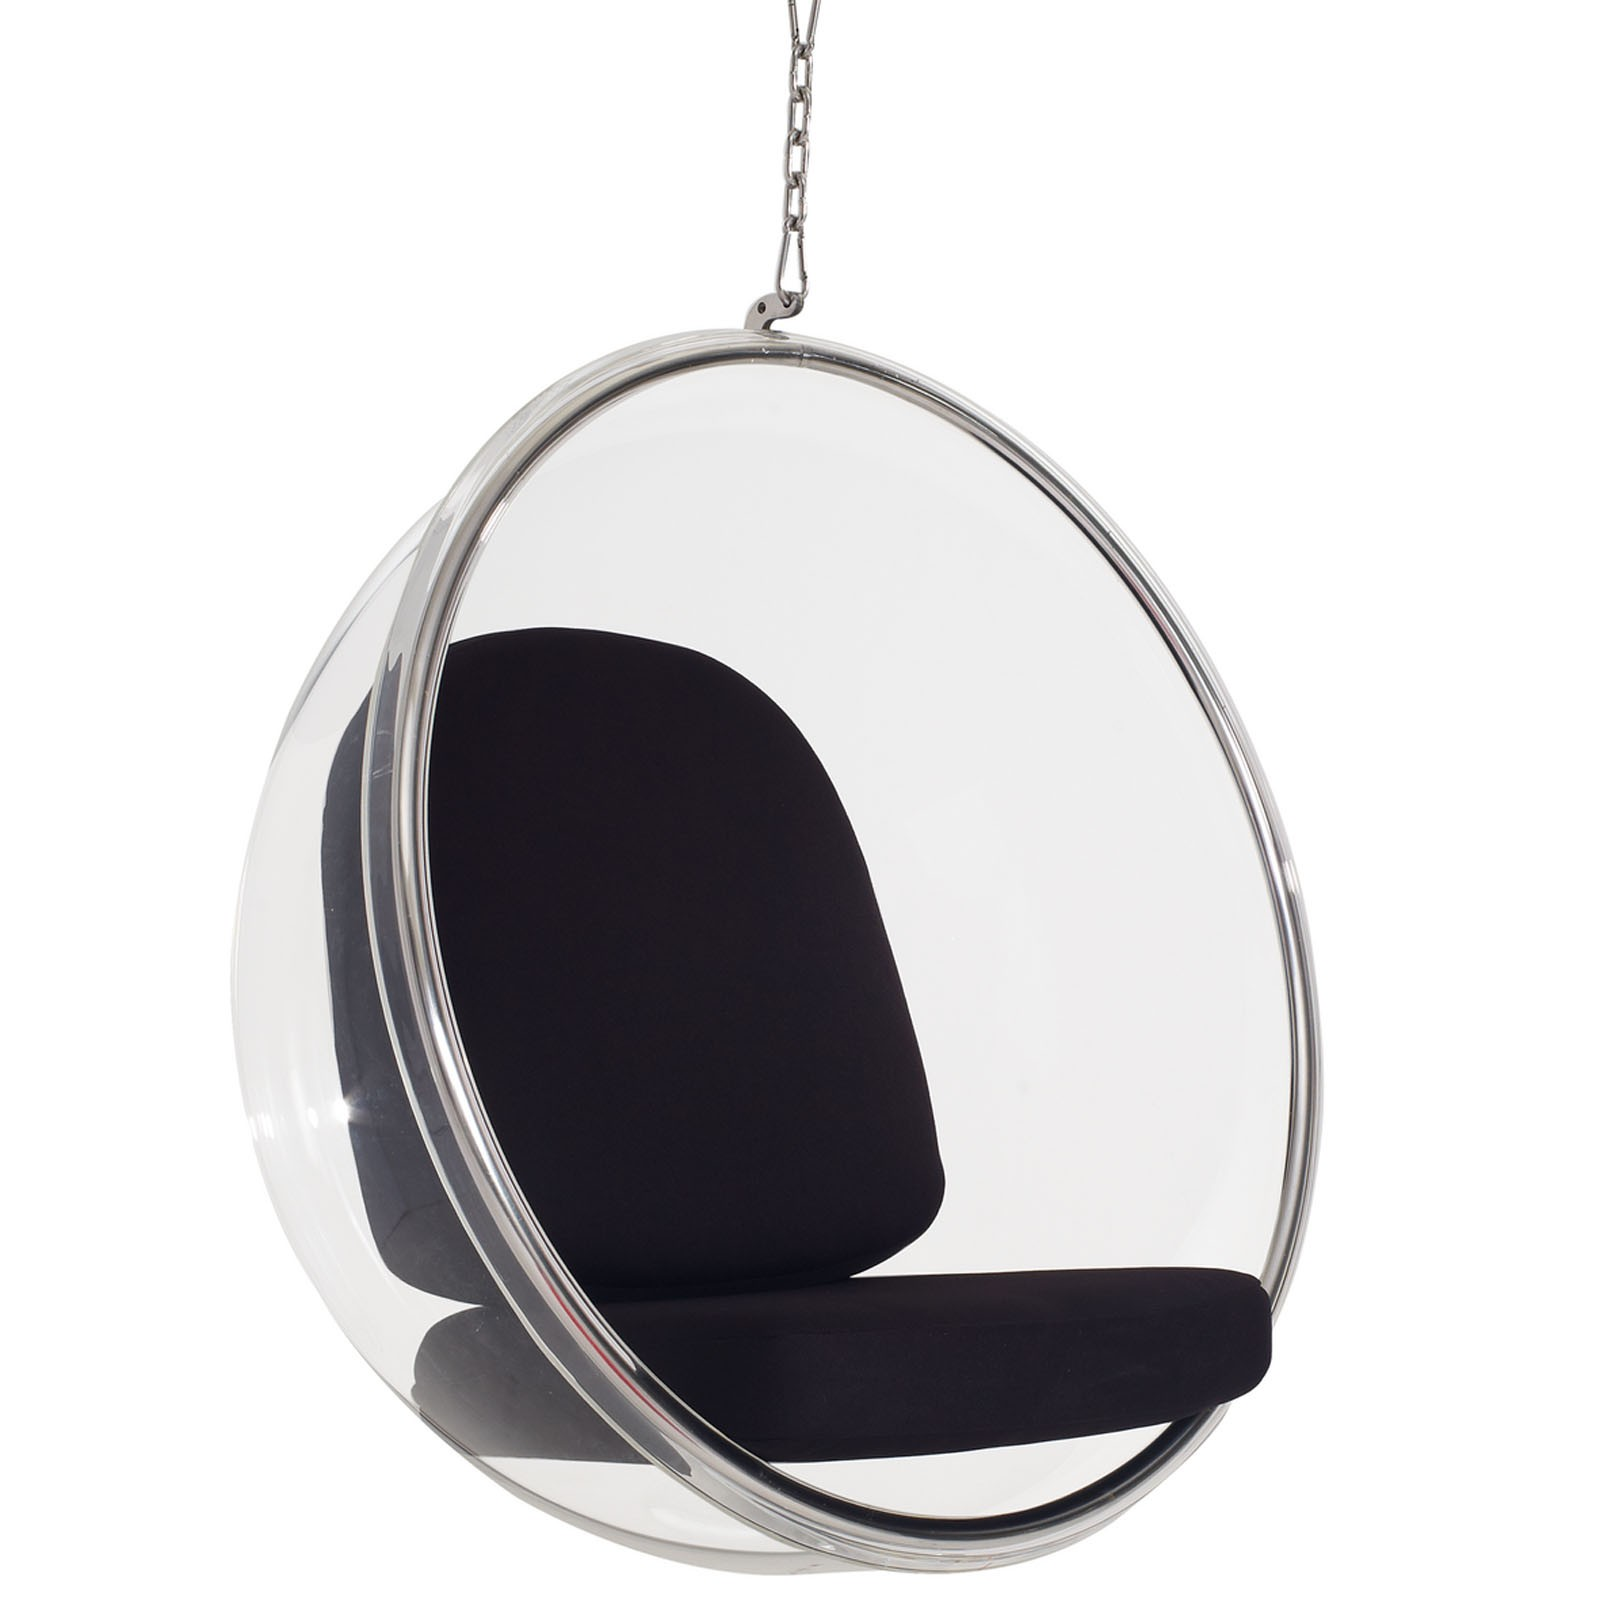 Ring Lounge Chair - Black